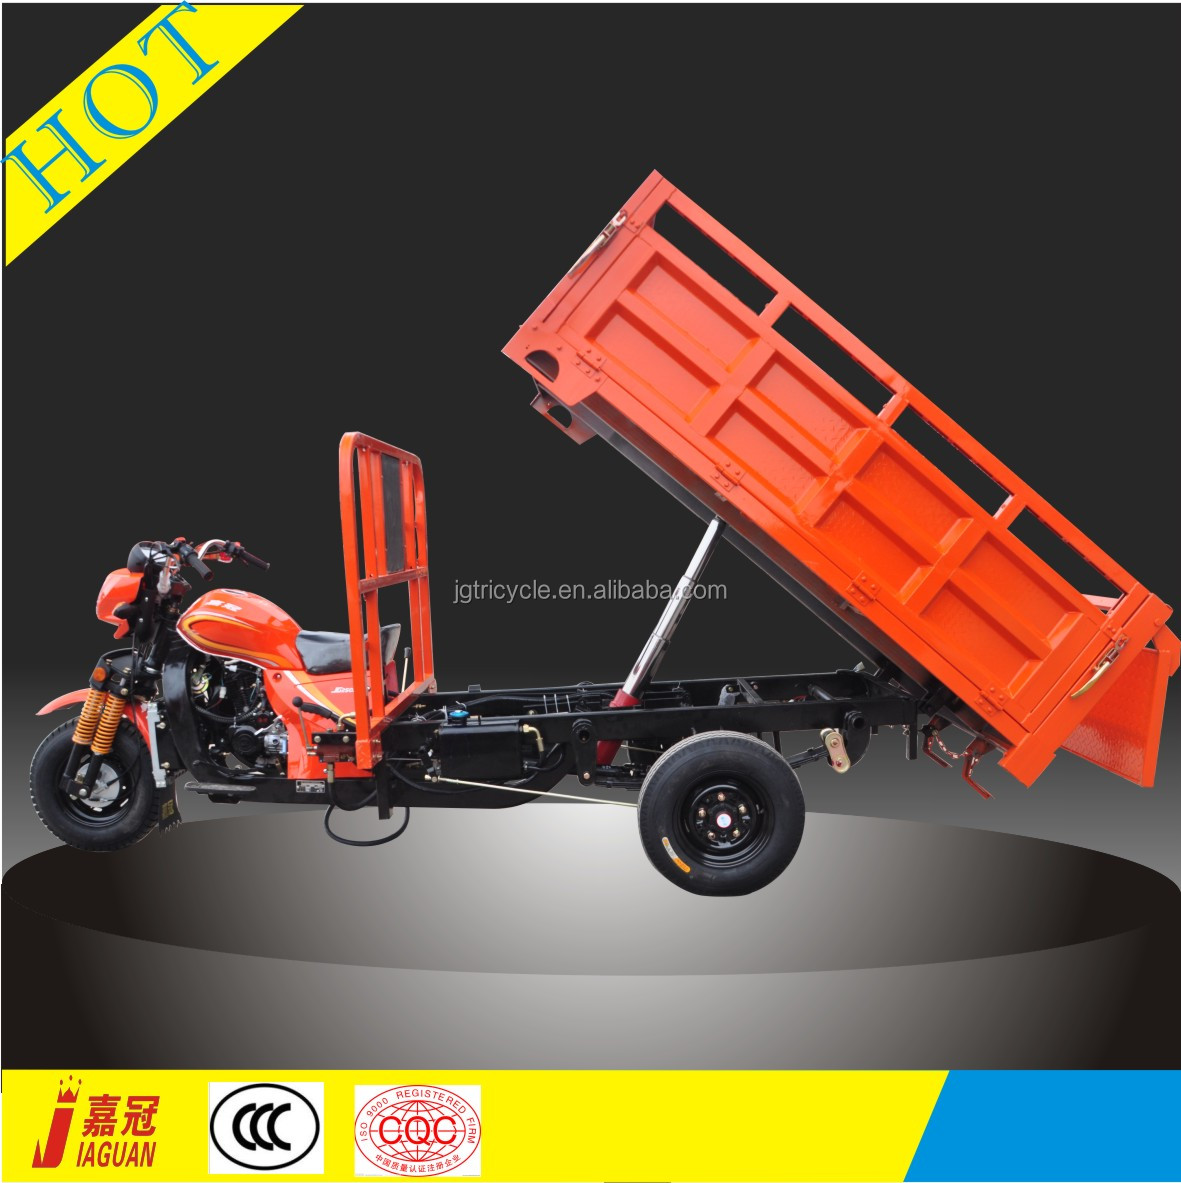 Popular hydraulic 200cc tipper three wheel motorcycle for adult